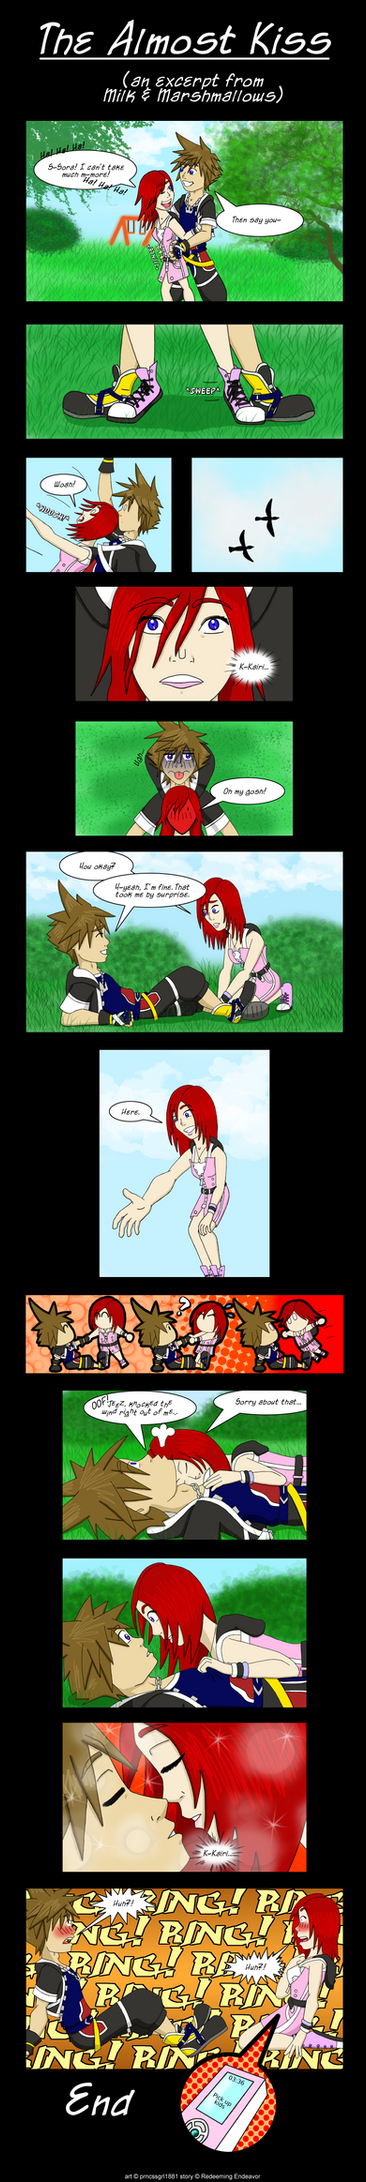 KH- The Almost Kiss by prncssgrl1881